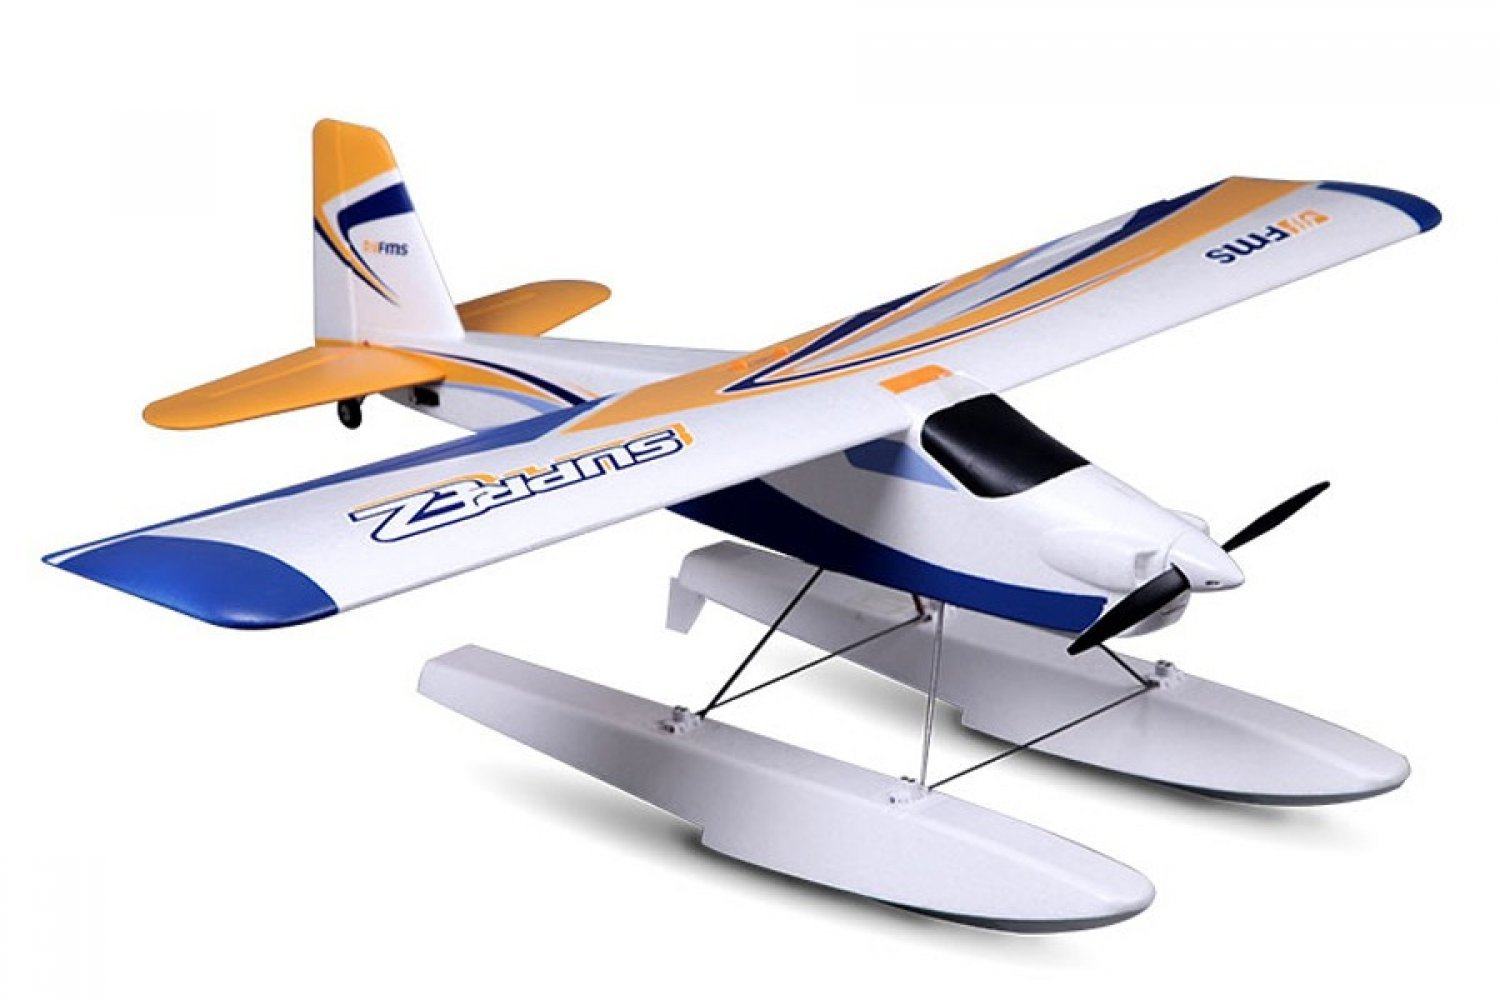 FMS078-V2 | FMS 1220mm Super Ez V3 Trainer RTF Yellow RC Plane